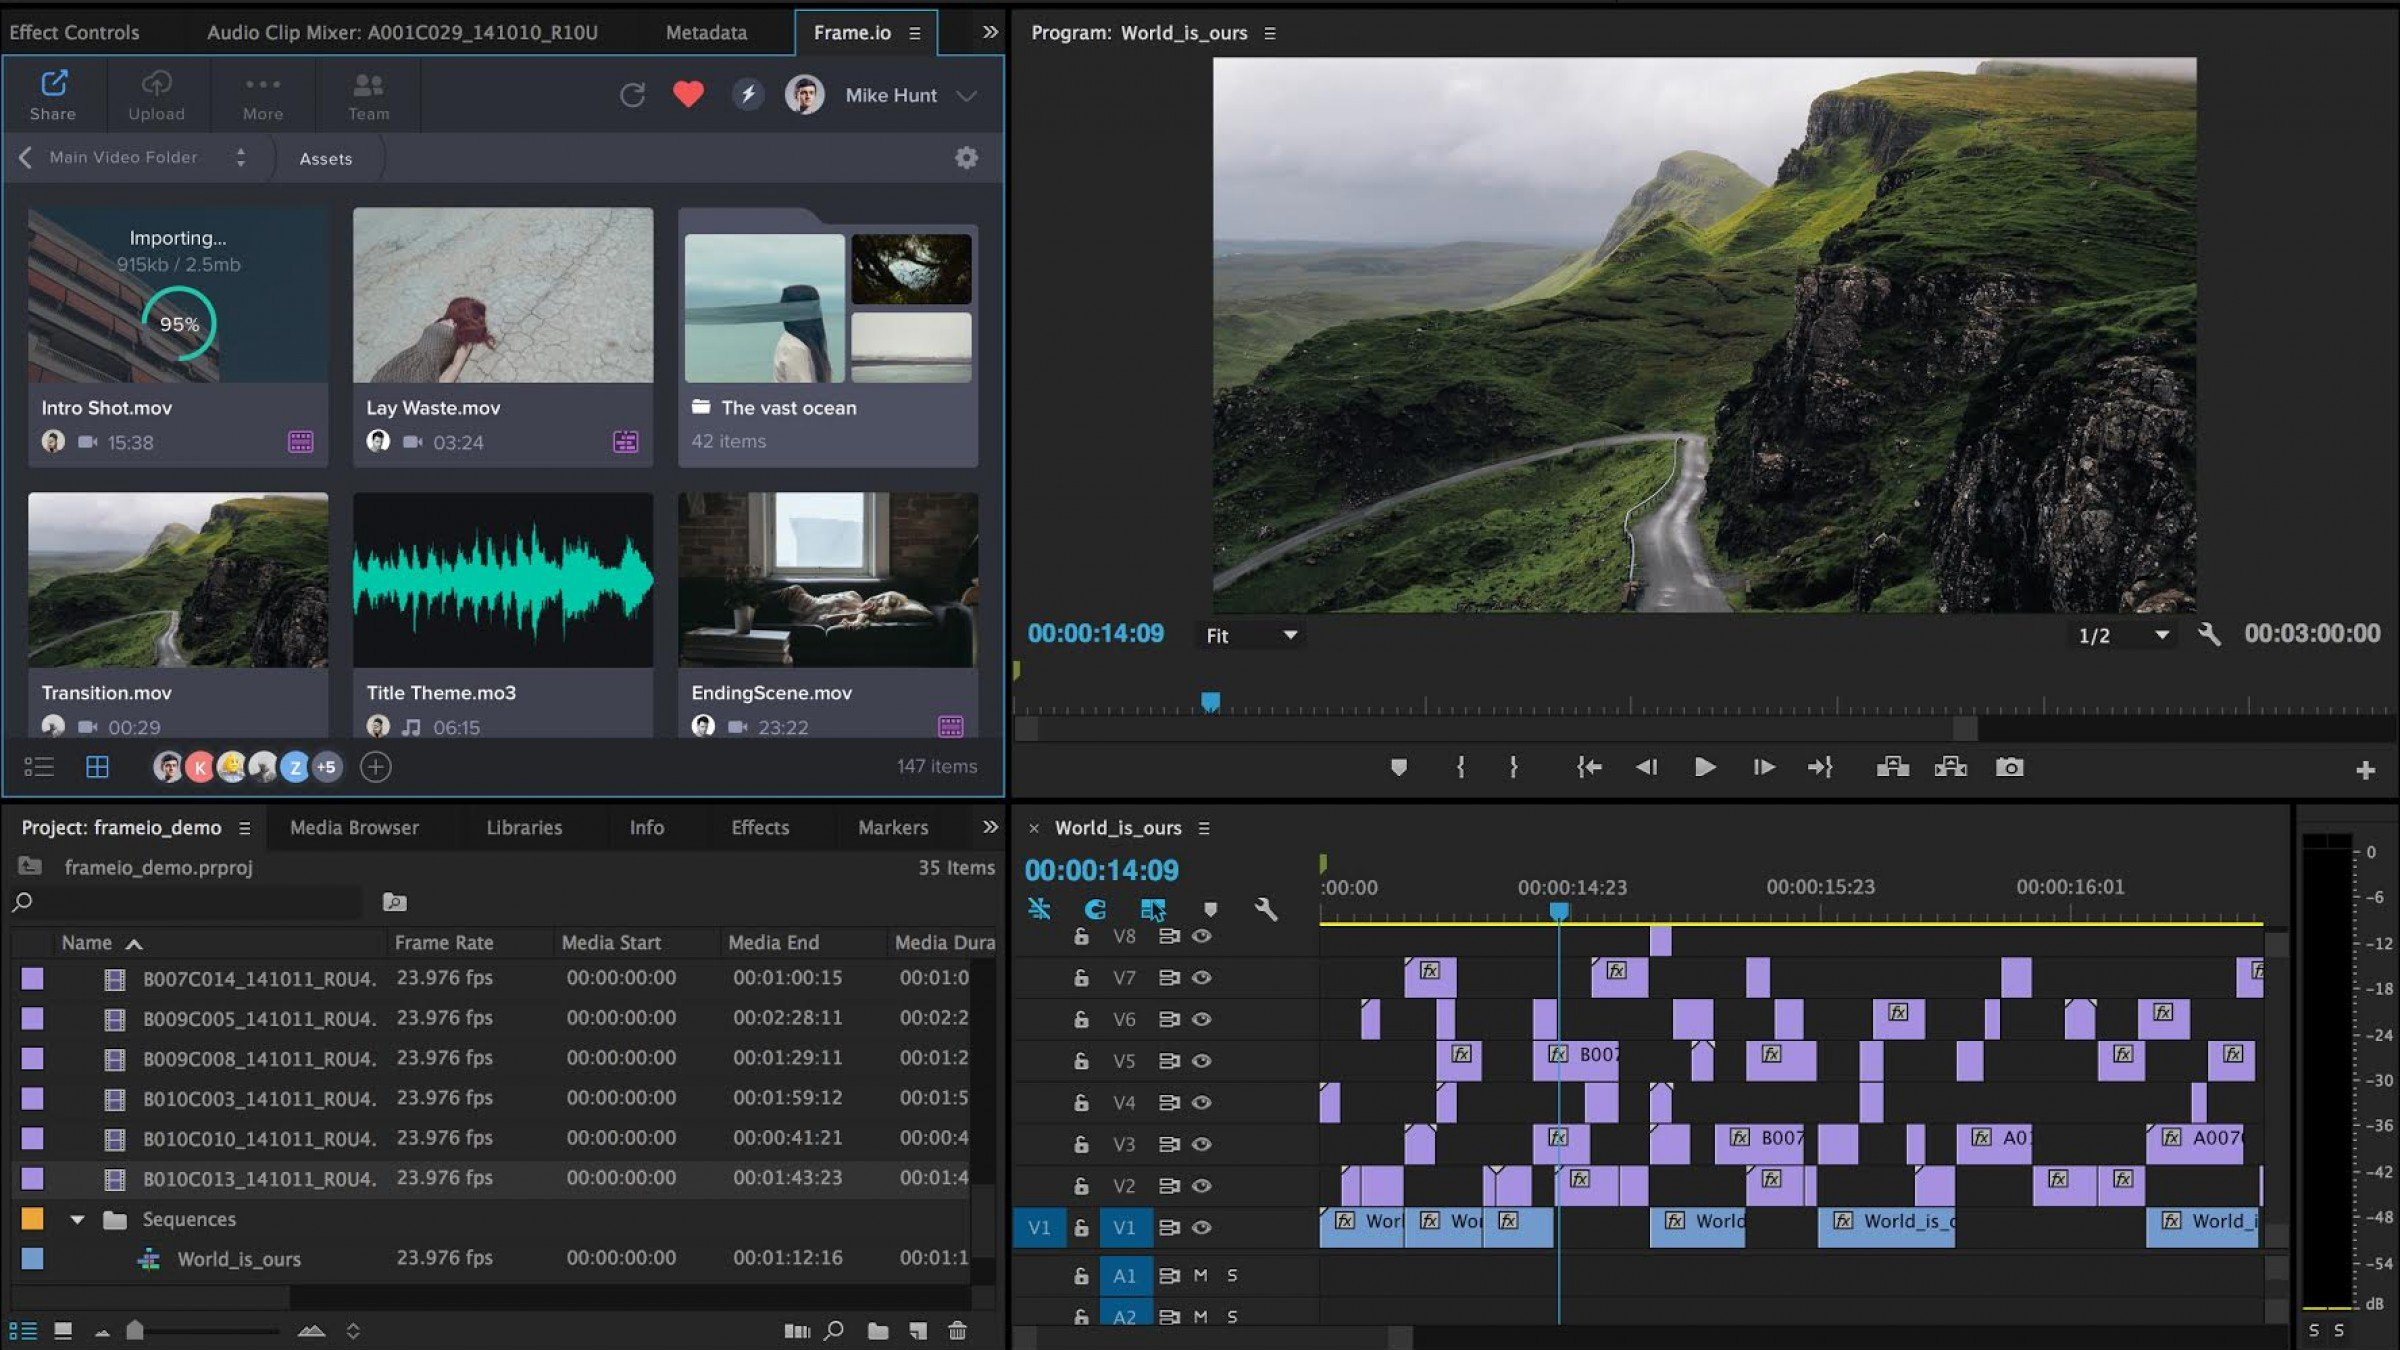 Frame io Adobe Premiere Pro Integration Lets You Collaborate On Your